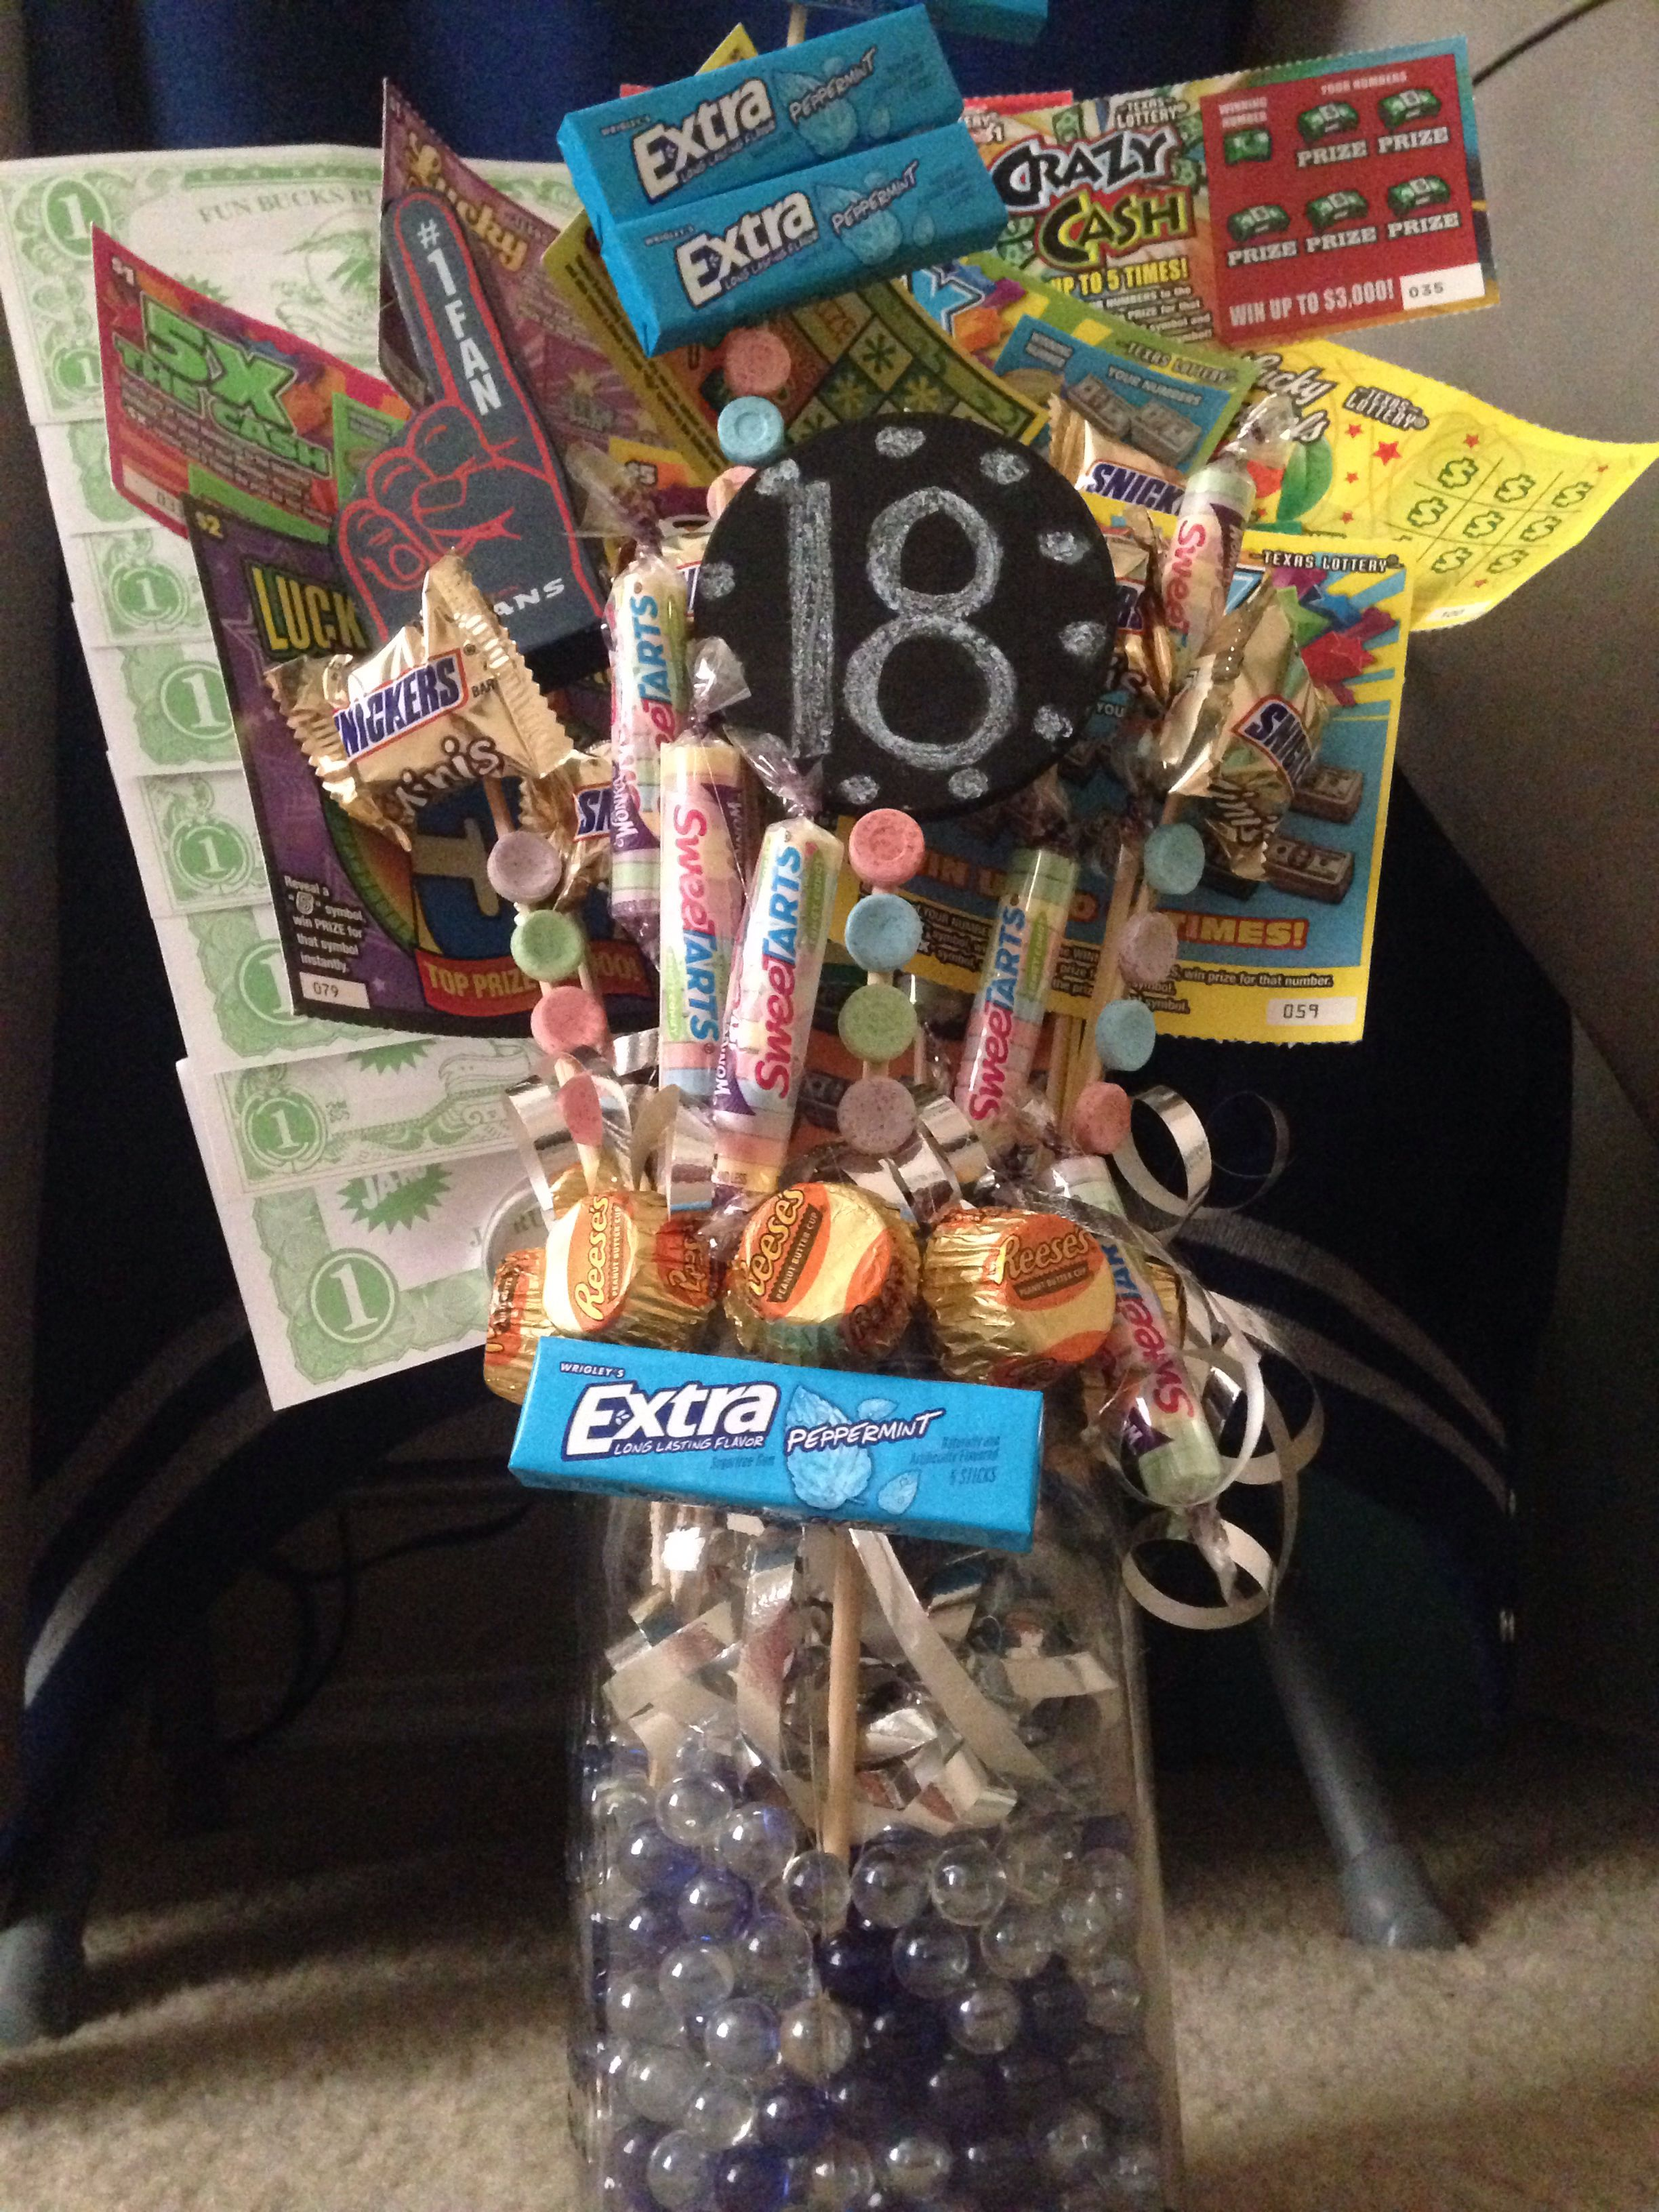 My Boyfriends 18th Birthday Present 18 Worth Of Lottery Tickets And His Favorite Candies